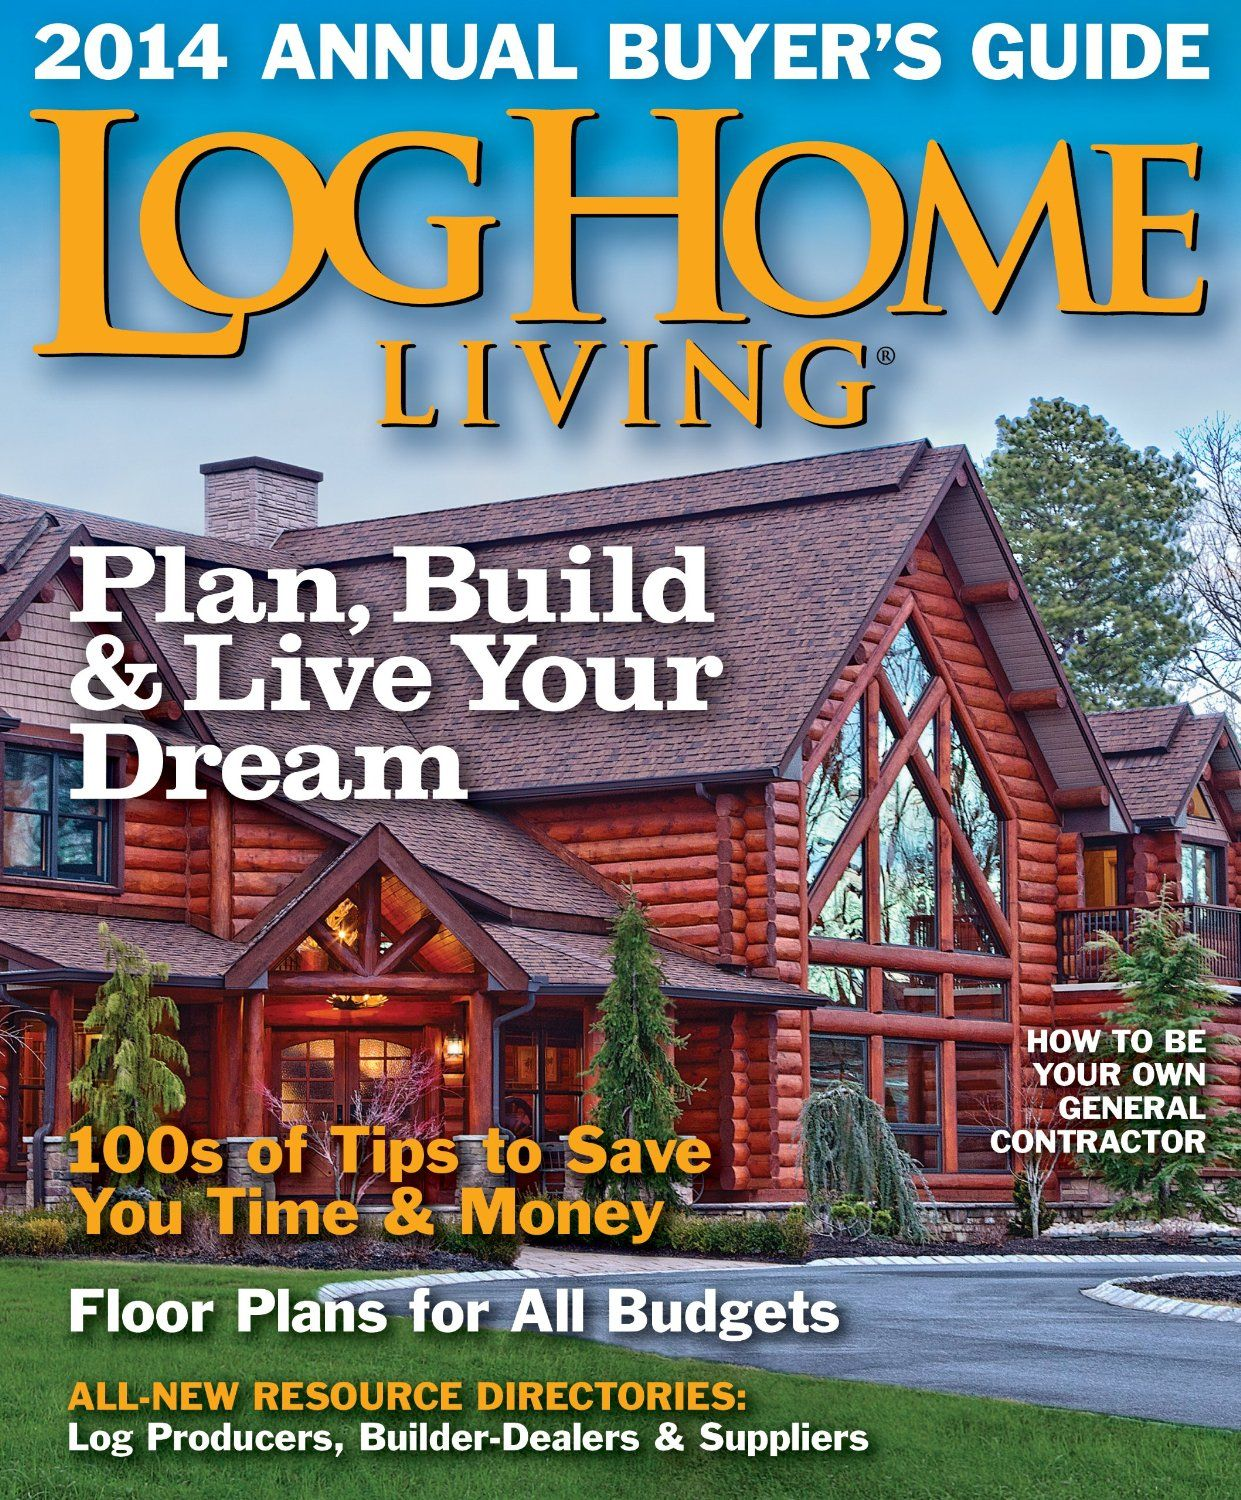 Log Home Living Magazine #homes #living #renovation